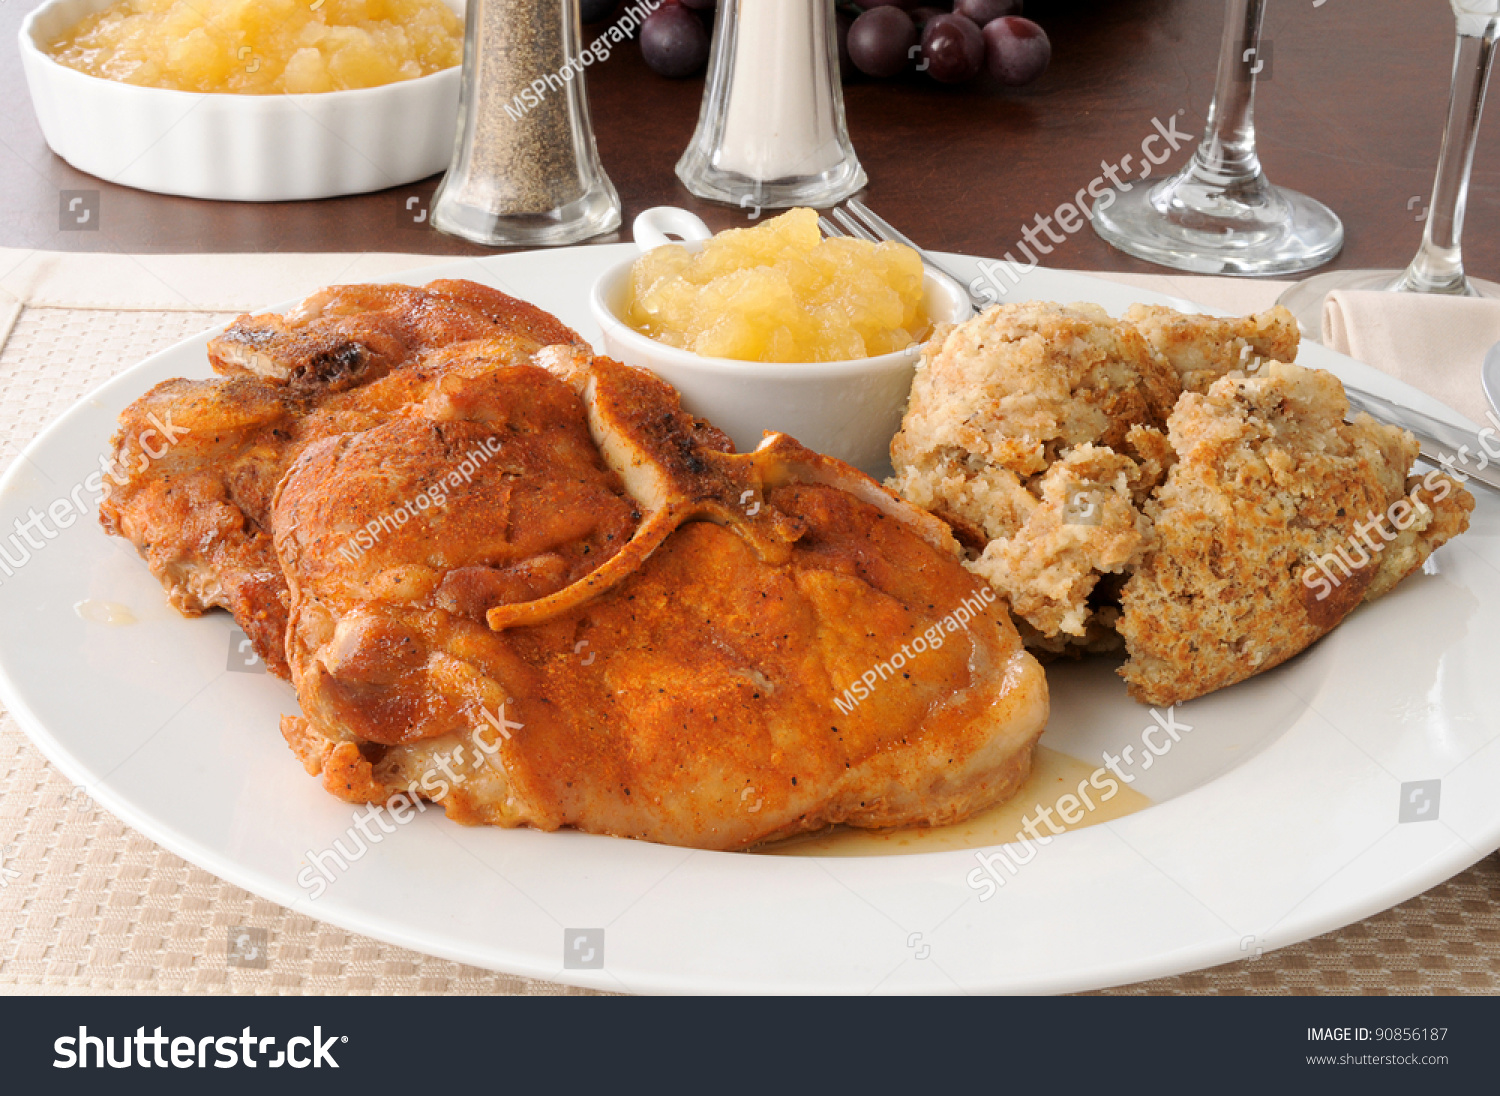 Baked Pork Chops With Herb Stuffing Stockfoto 90856187 ...